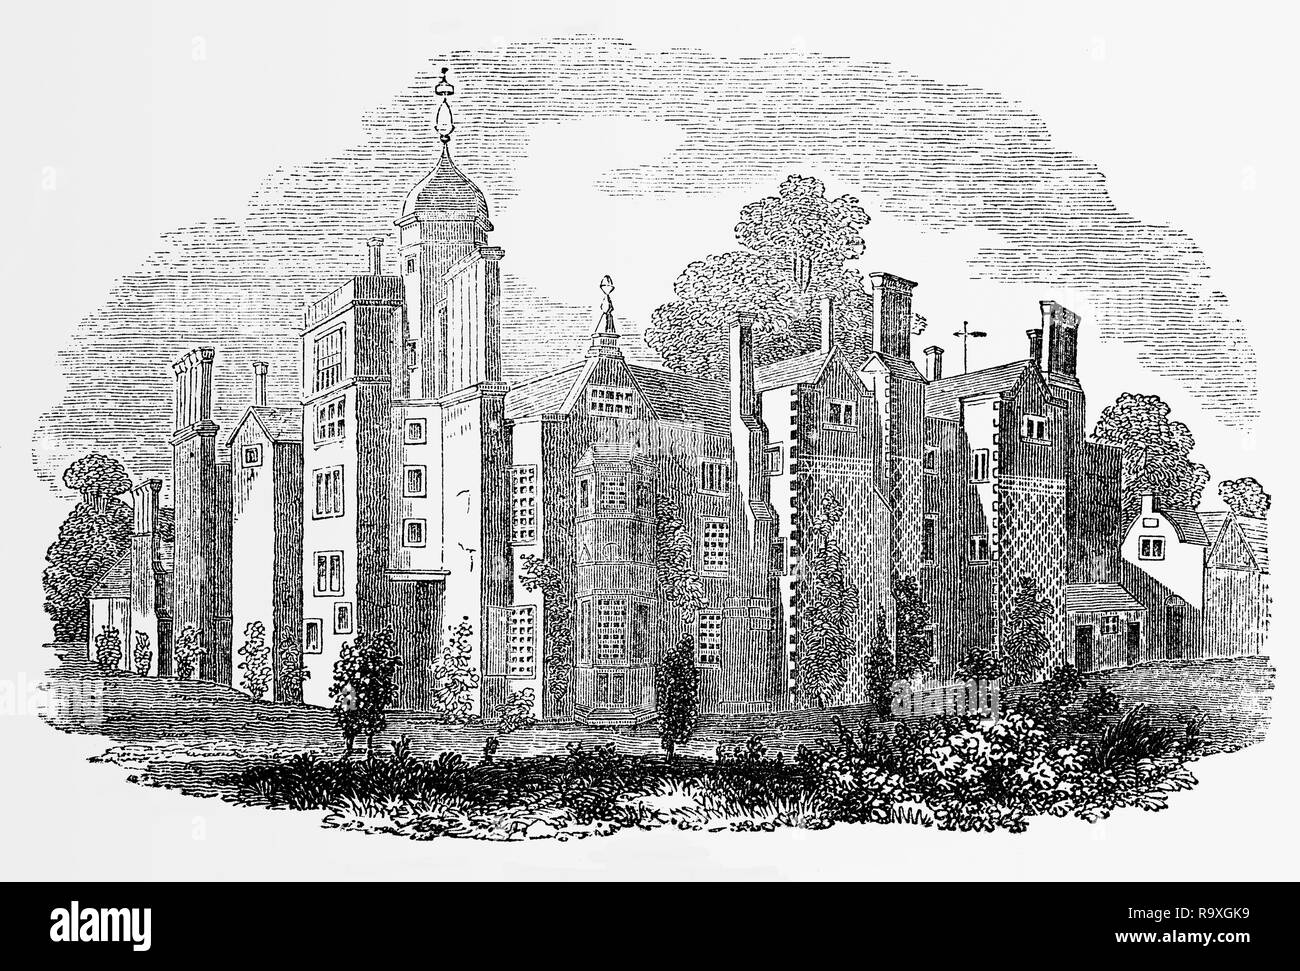 Hindlip aka Hendlip Hall in Worcestershire, England was built before 1575. It played a significant role in both the Babington and the Gunpowder plots (where it hid four people in priest holes, who were eventually executed).  The old hall was destroyed by fire and was demolished in 1820. - Stock Image